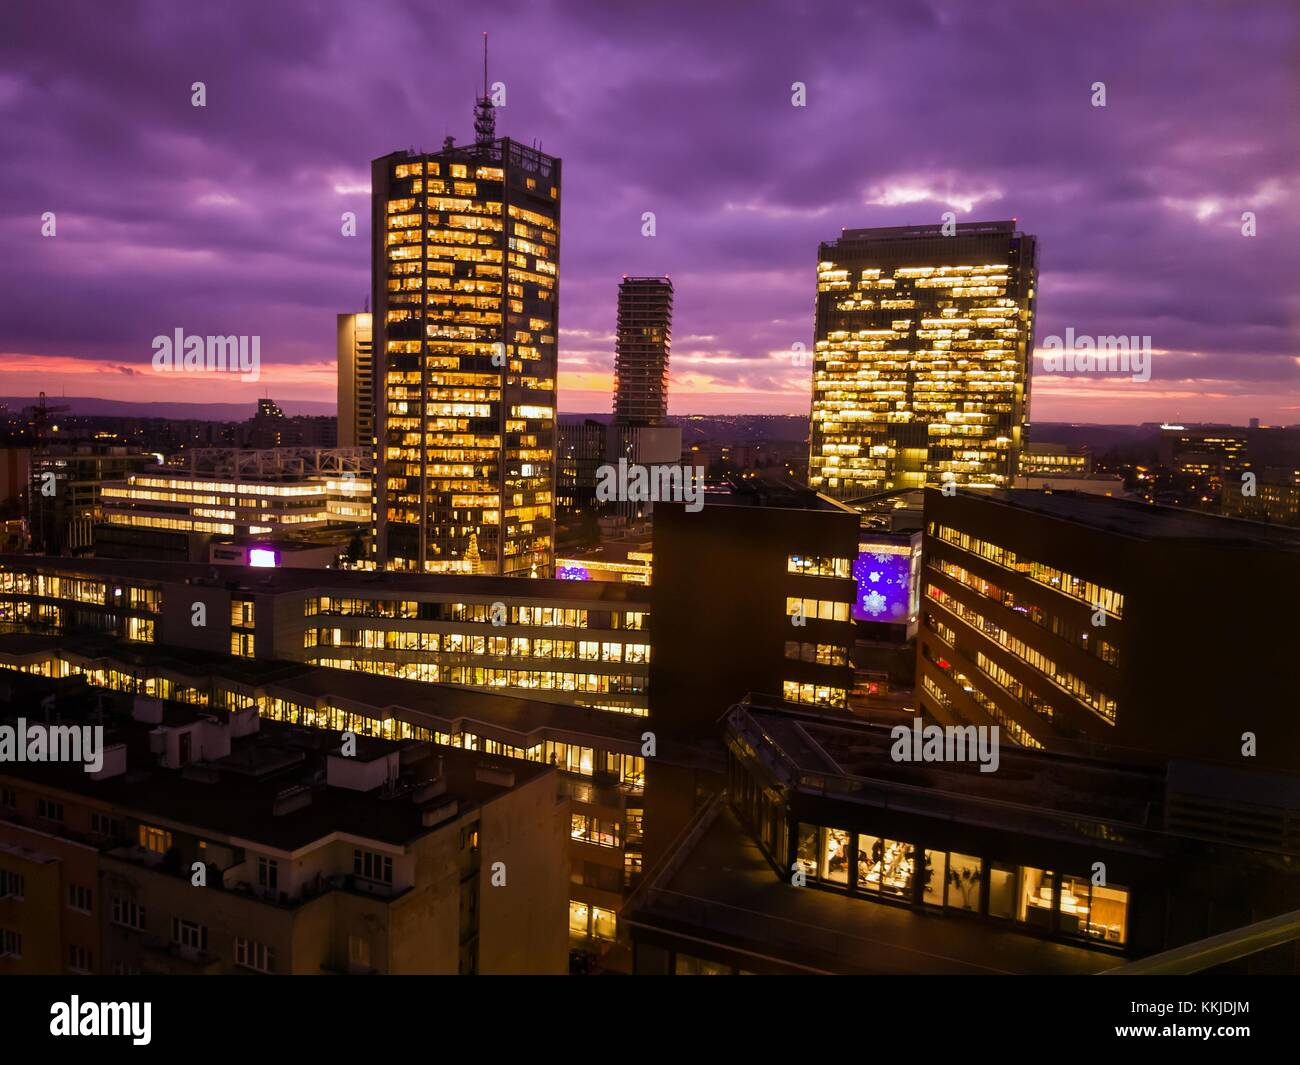 Prague skyscrapers in blue hour with purple sky. Modern office architecture. - Stock Image